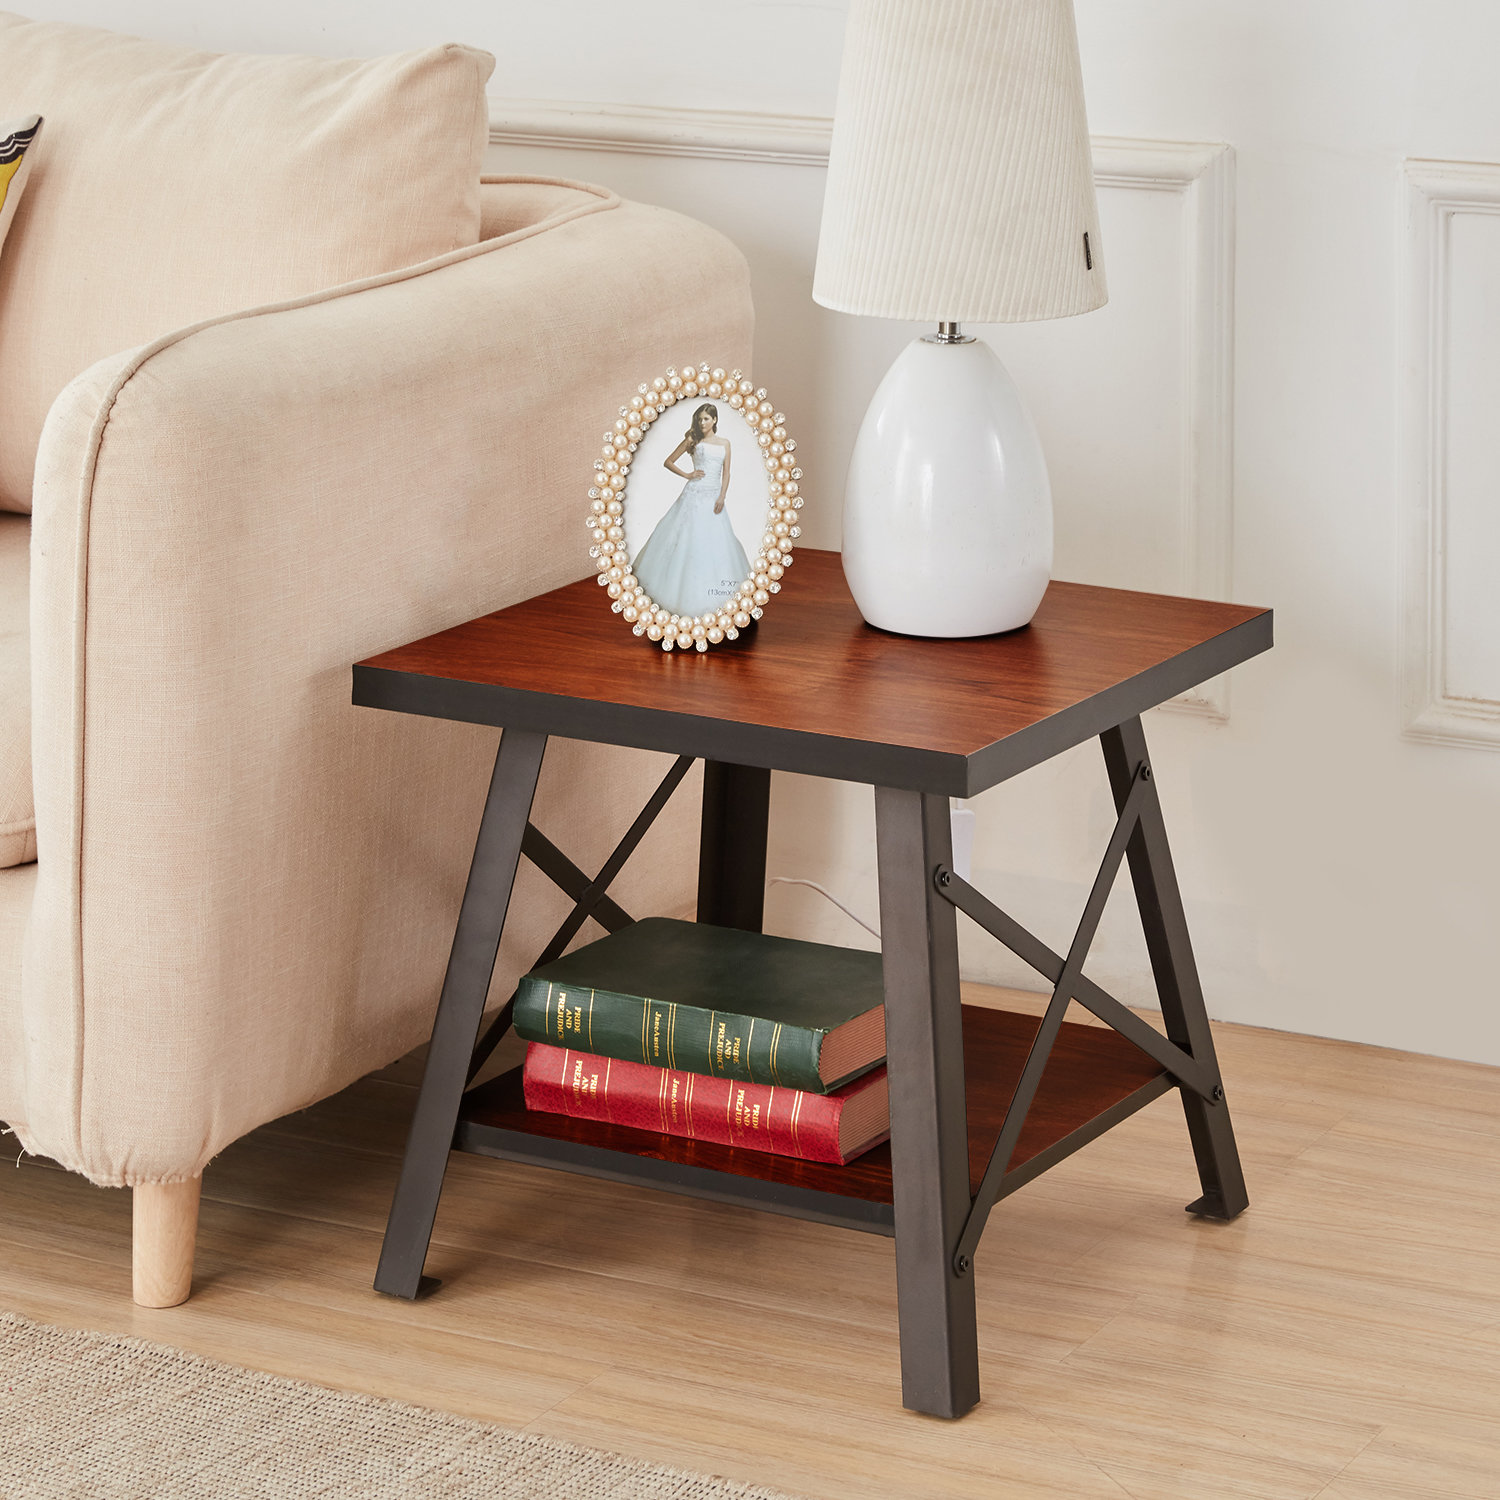 solid wood accent table horace end oak tables runner and placemats unusual coffee ideas retro furniture sheesham blue white jar lamp bathroom chest drawers marble steel led